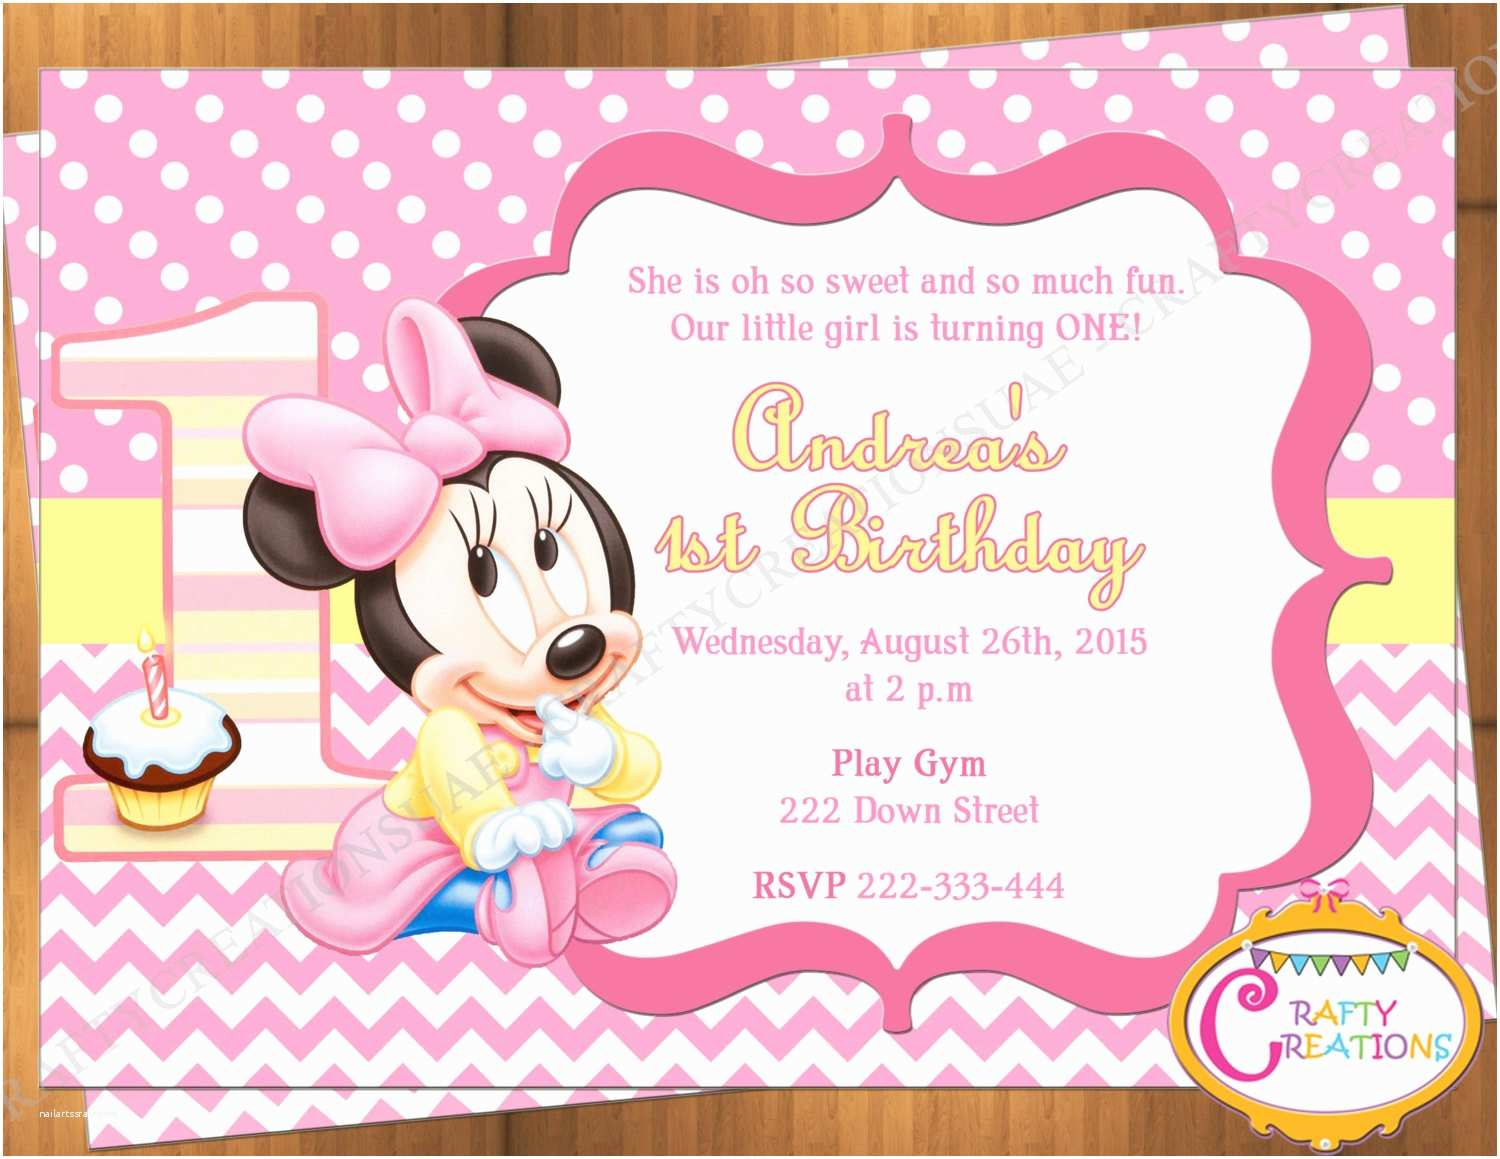 Minnie Mouse First Birthday Invitations Baby Minnie Mouse First Birthday Invitation Minnie Mouse 1st